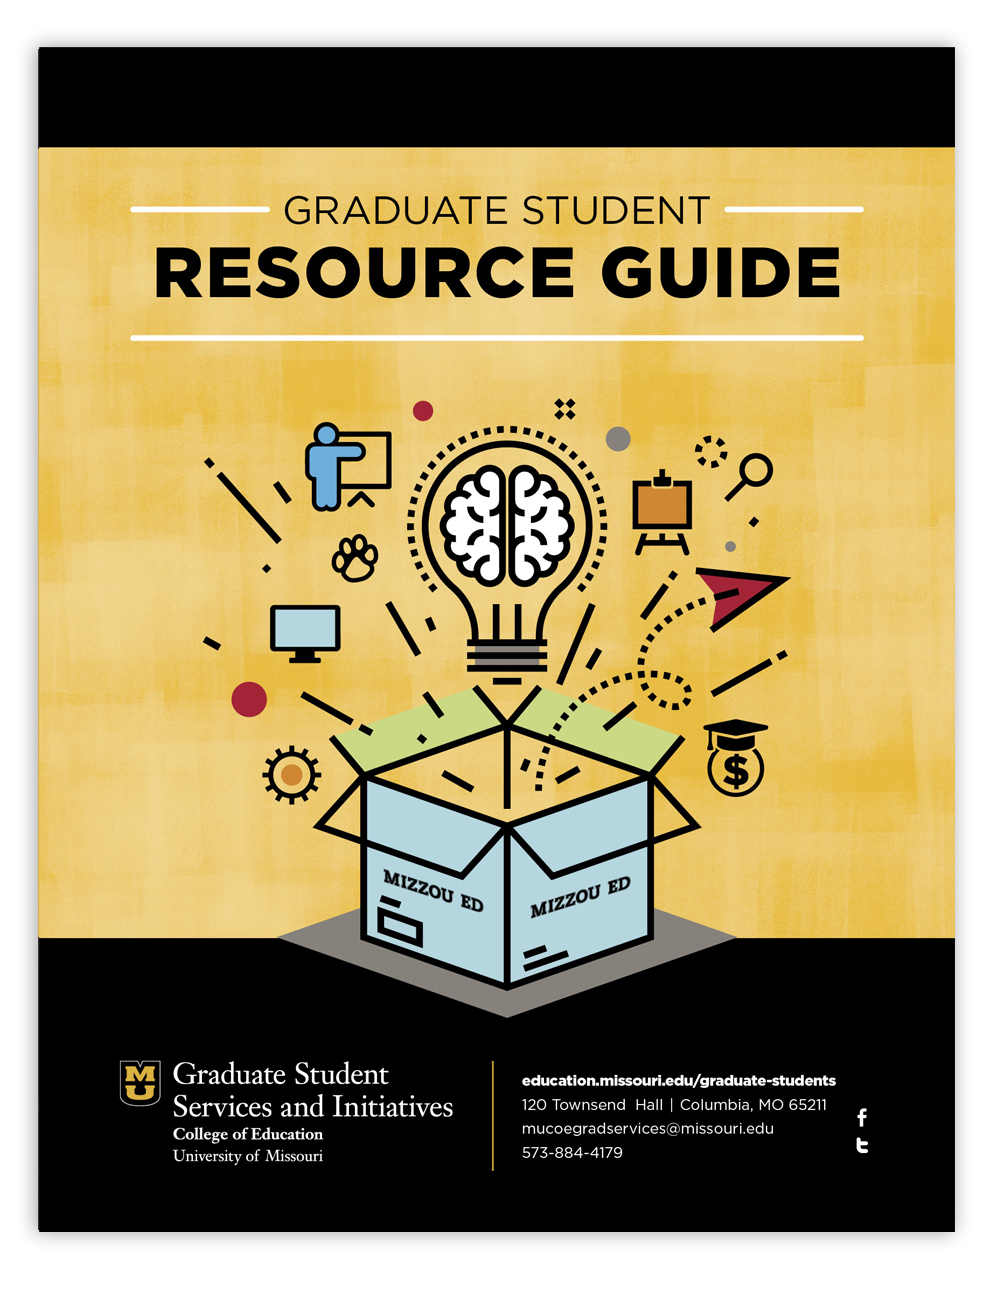 Office of Graduate Student Services & Initiatives Resource Guide front cover, link to pdf booklet, University of Missouri College of Education